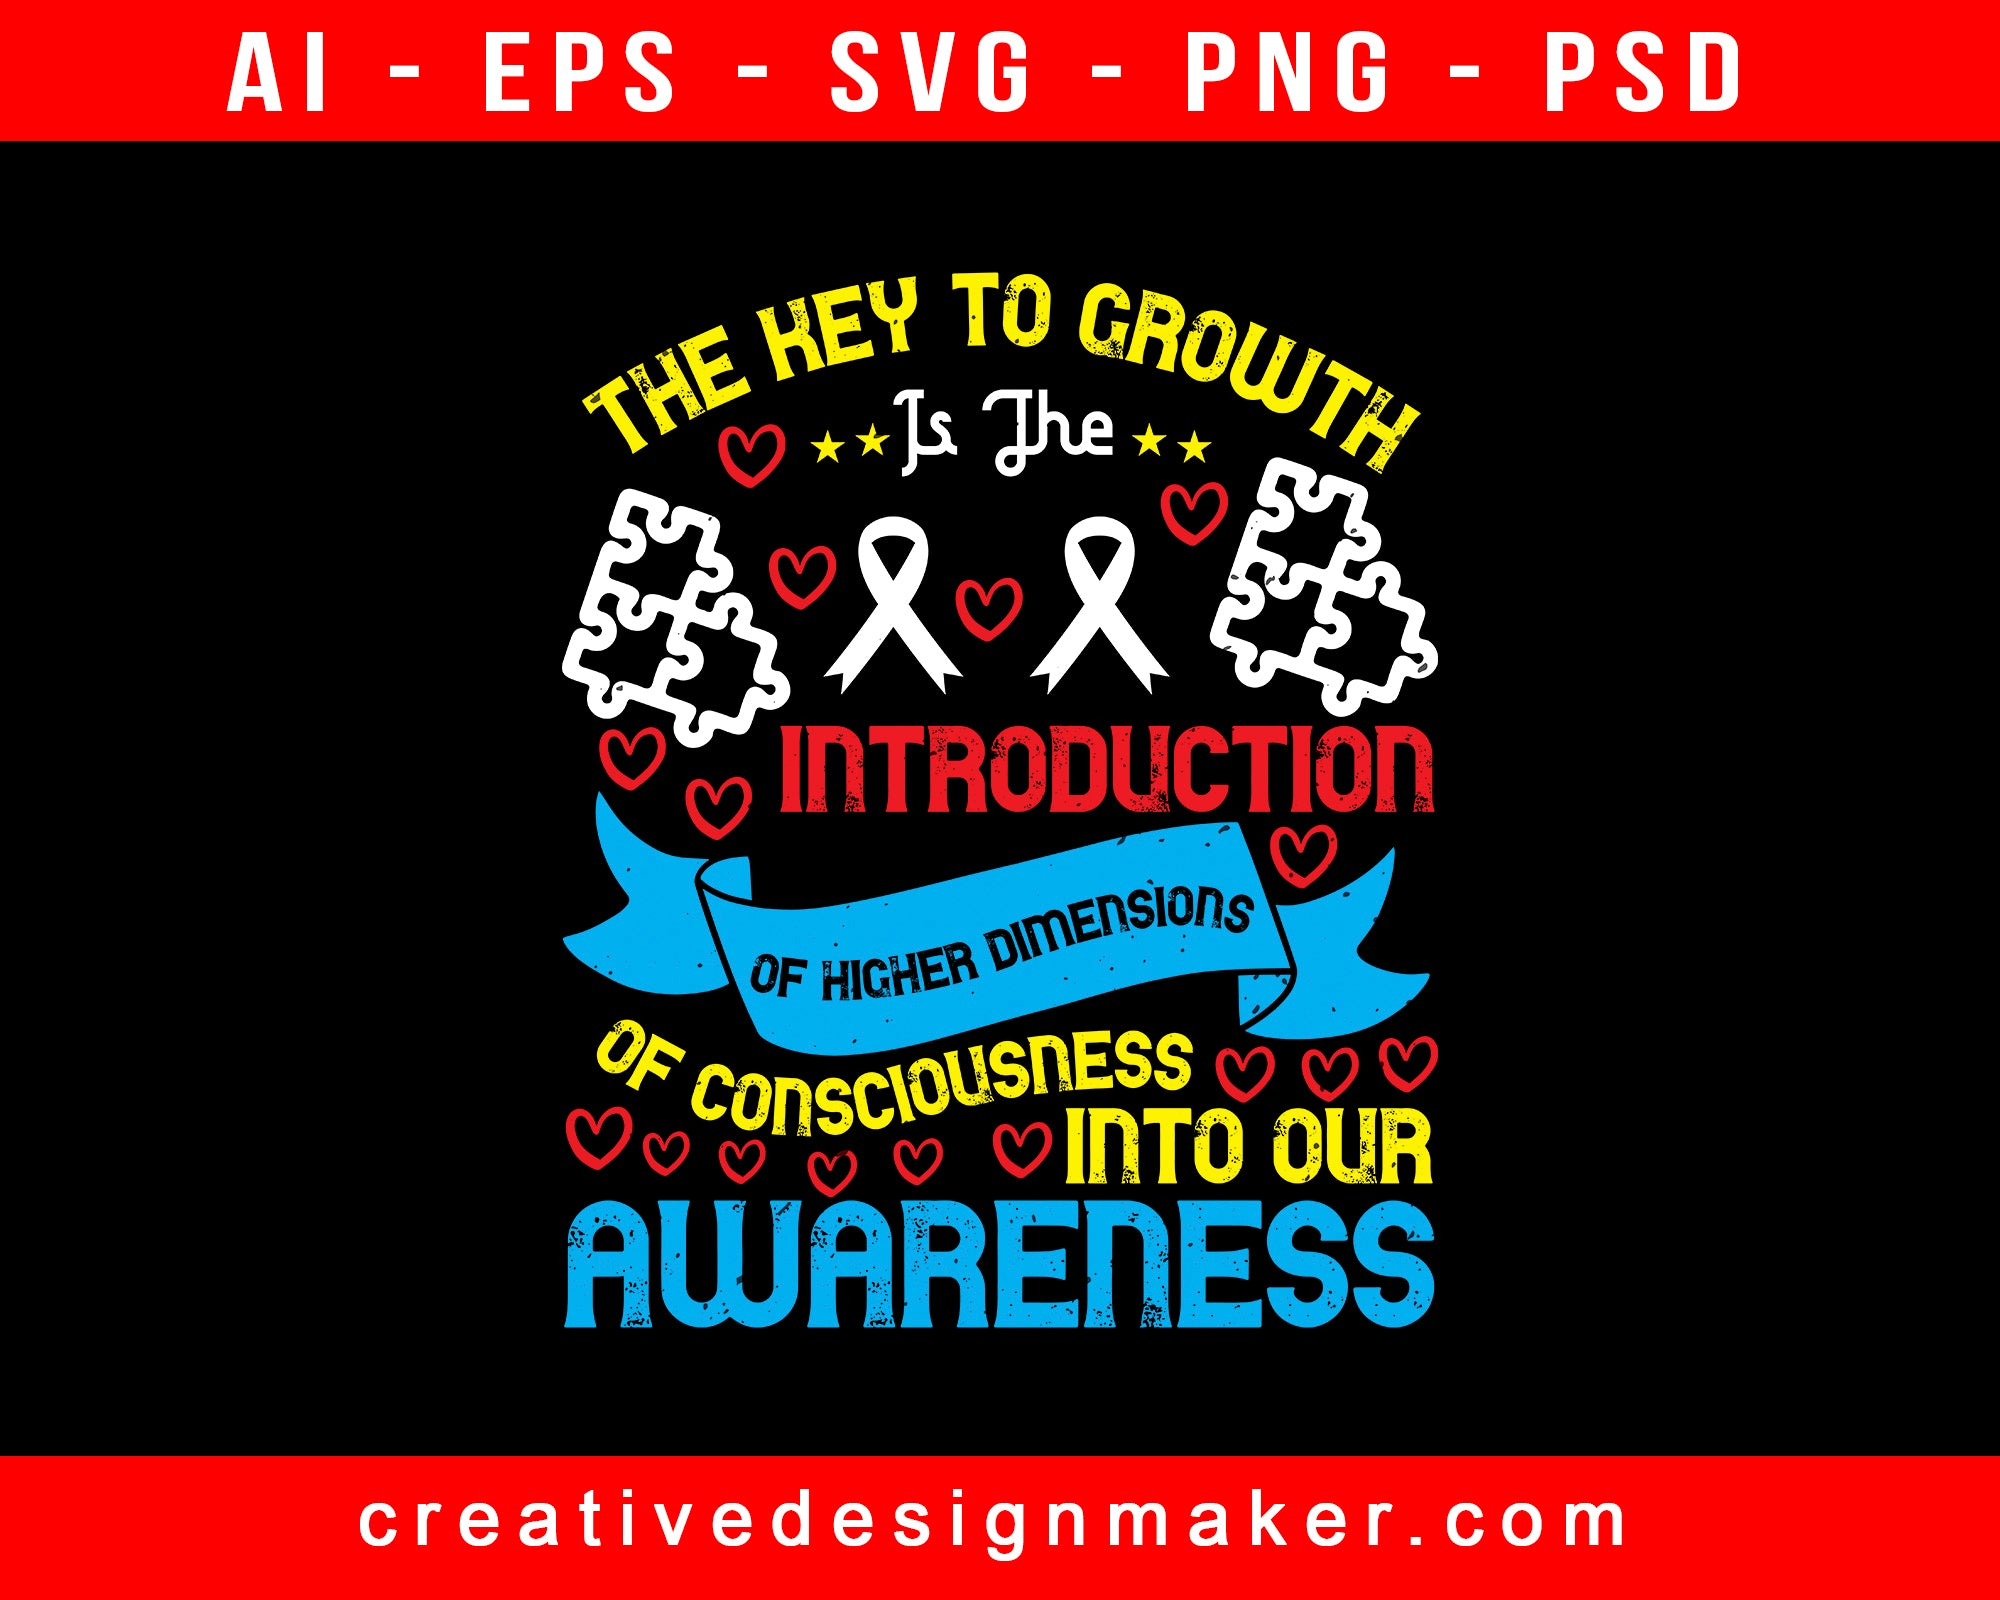 The Key To Growth Is The Introduction Of Higher Dimensions Awareness Print Ready Editable T-Shirt SVG Design!